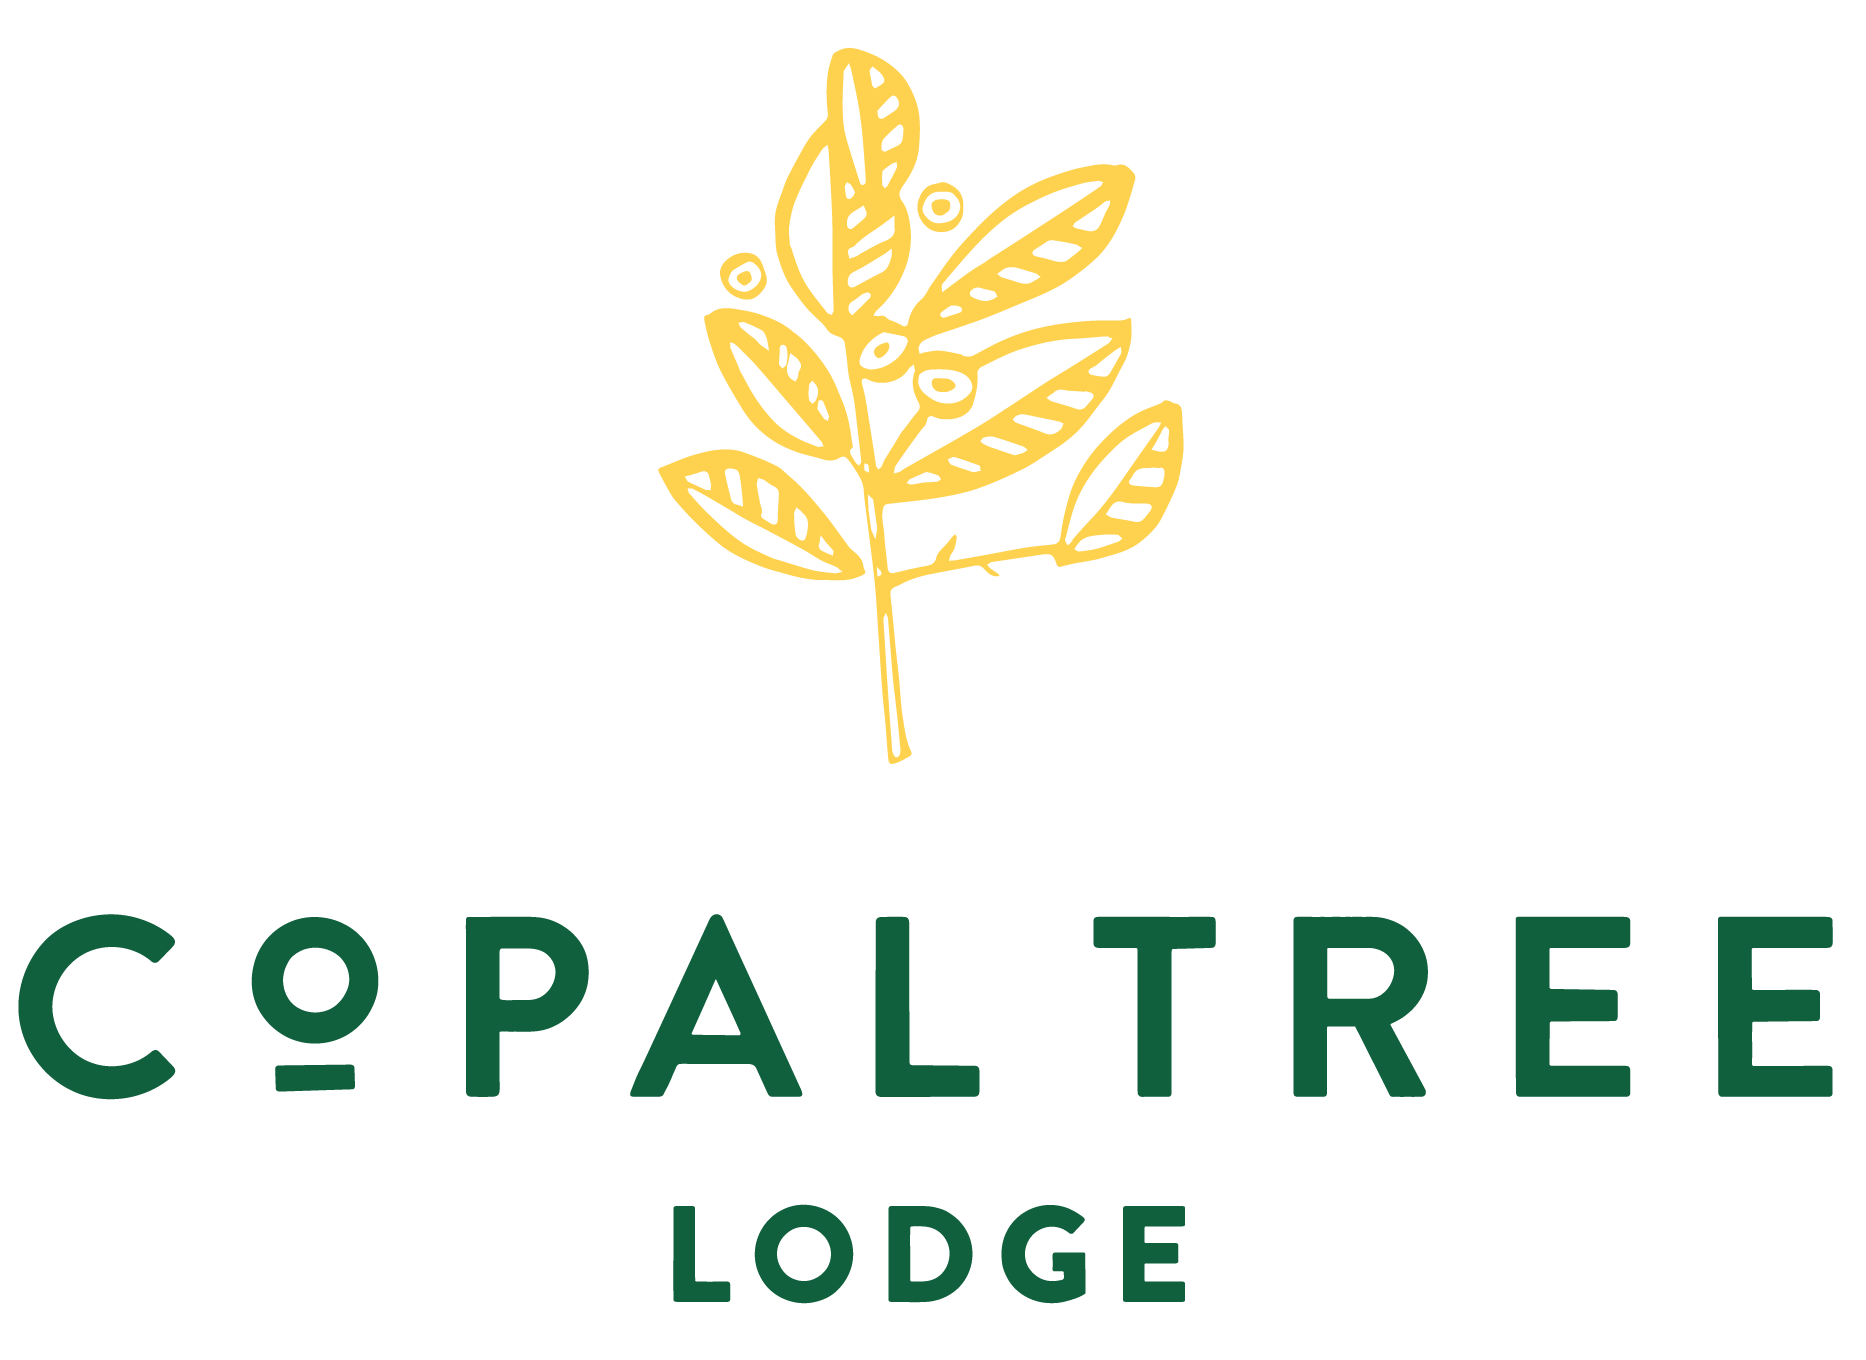 CTlogo_Lodge_secondary_CMYK_color.png